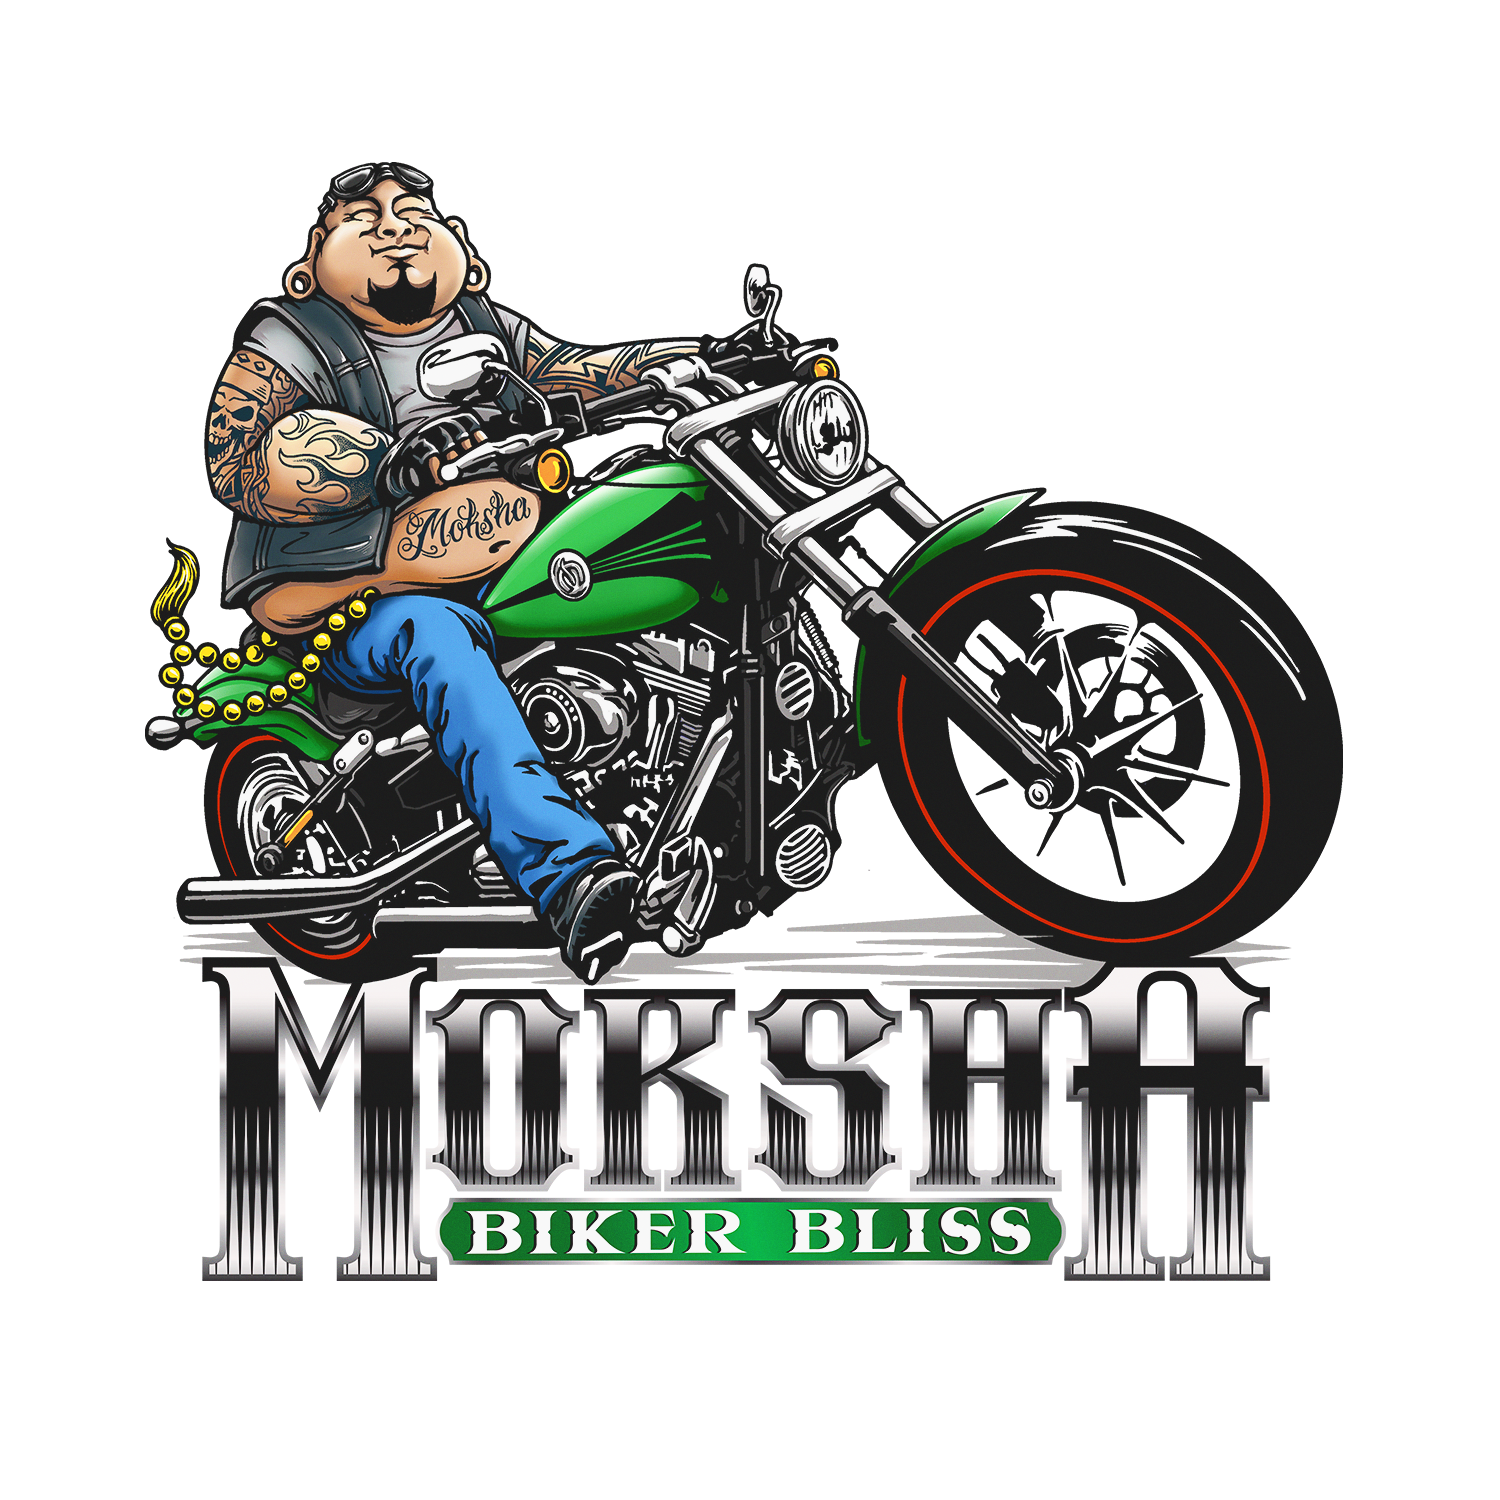 Can you improve our Badass Buddha Biker? Please read the notes for details.